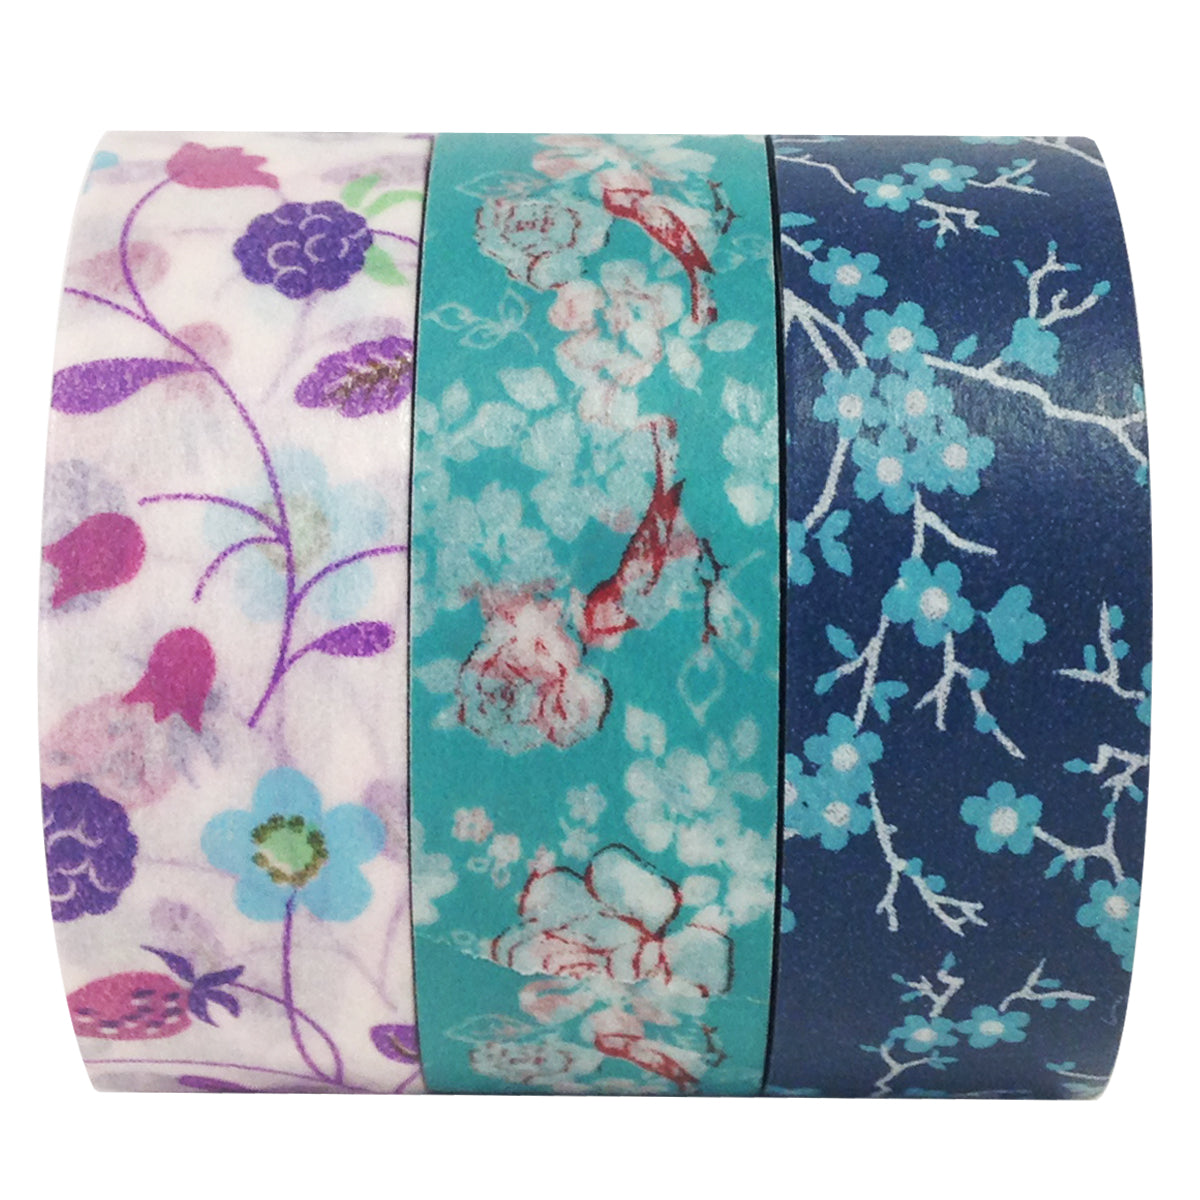 Wrapables Sweet Dusk Japanese Washi Masking Tape (set of 3)